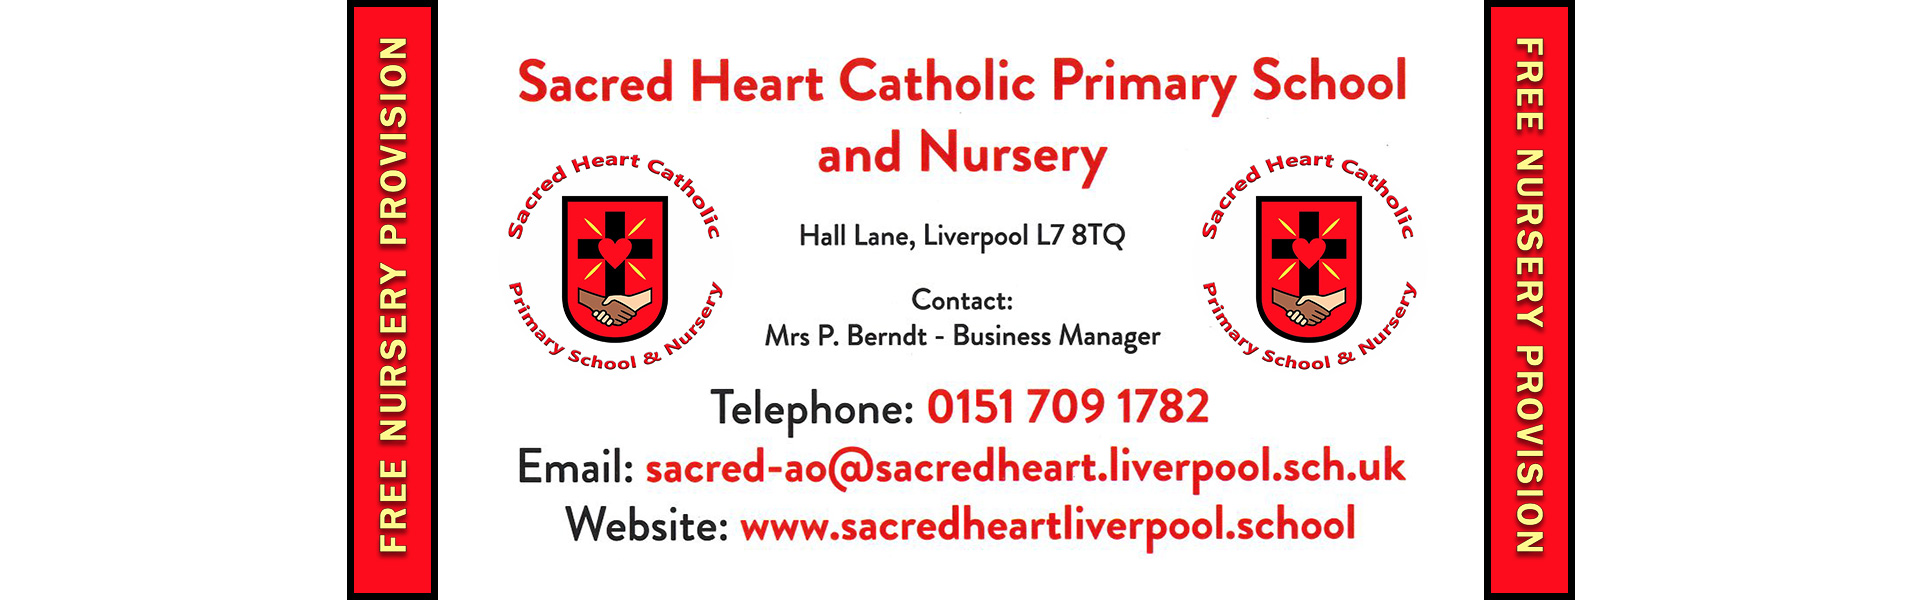 sacred-heart-liverpool-catholic-school-1